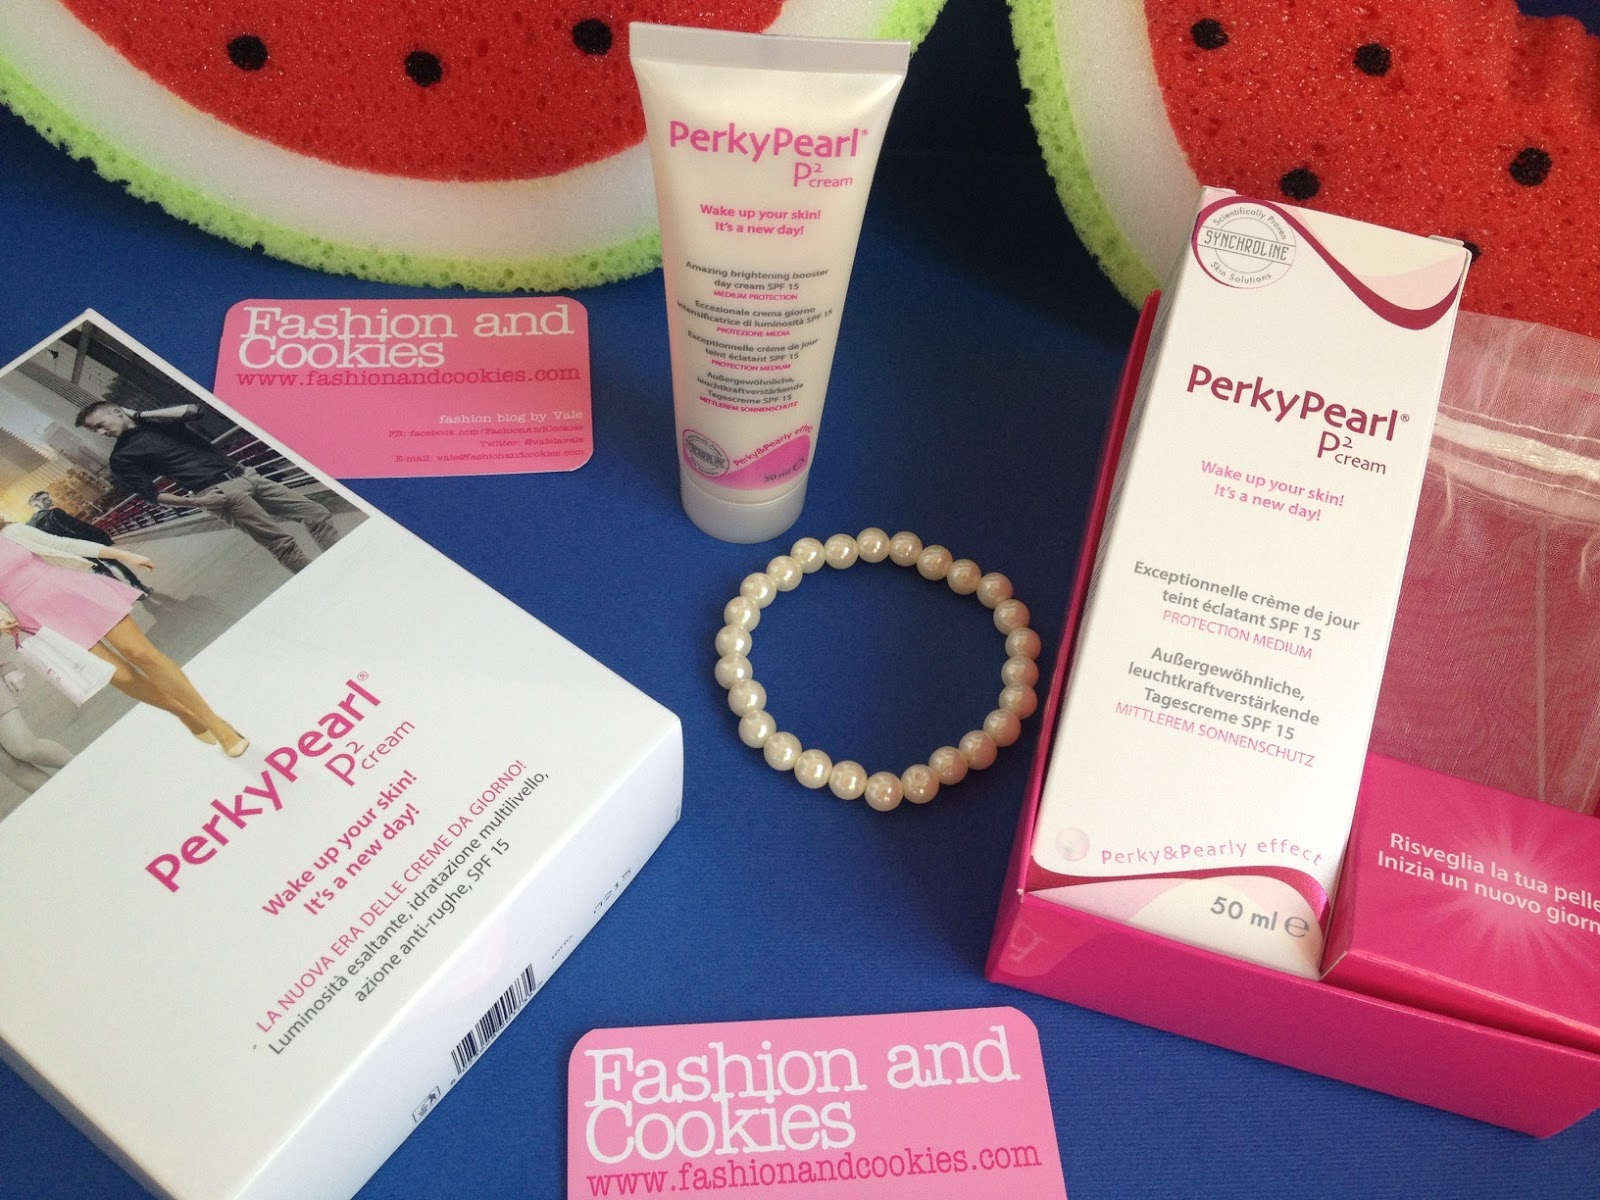 Perky Pearl day cream on Fashion and Cookies fashion and beauty blog